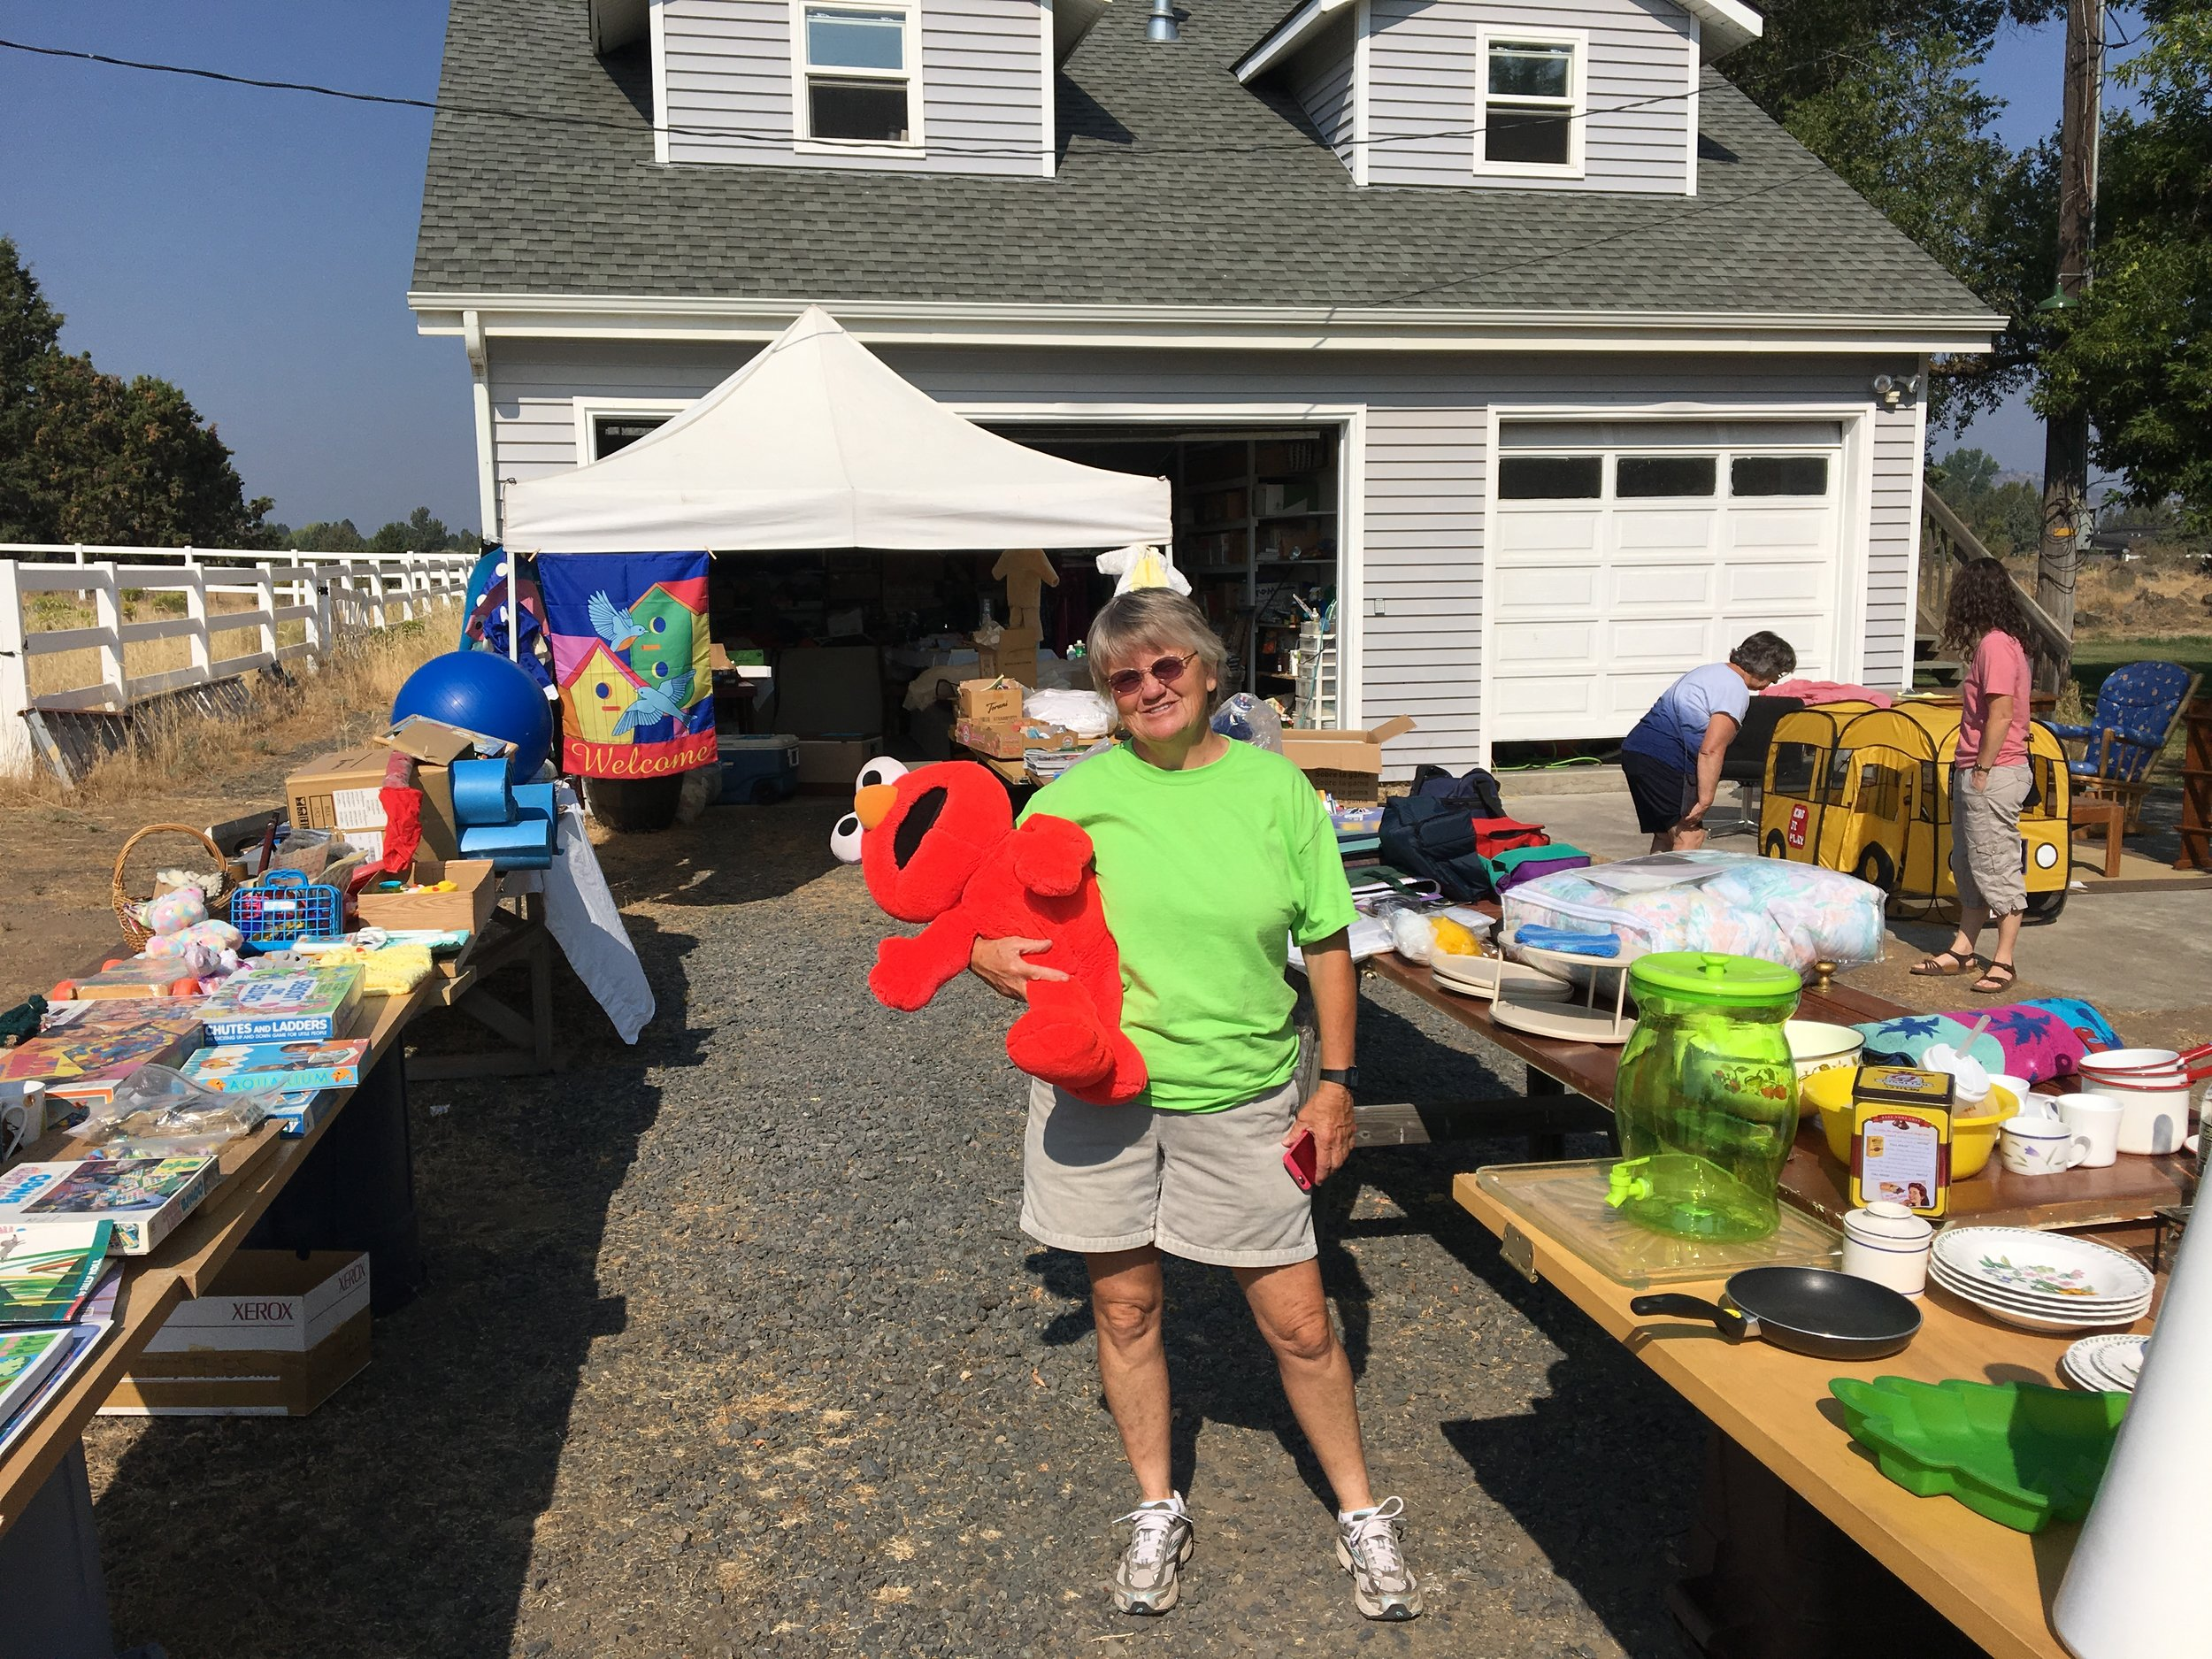 Learn how to host the very best garage sale ever - Aug 8 Mary S Garage Sale School Of Etiquette